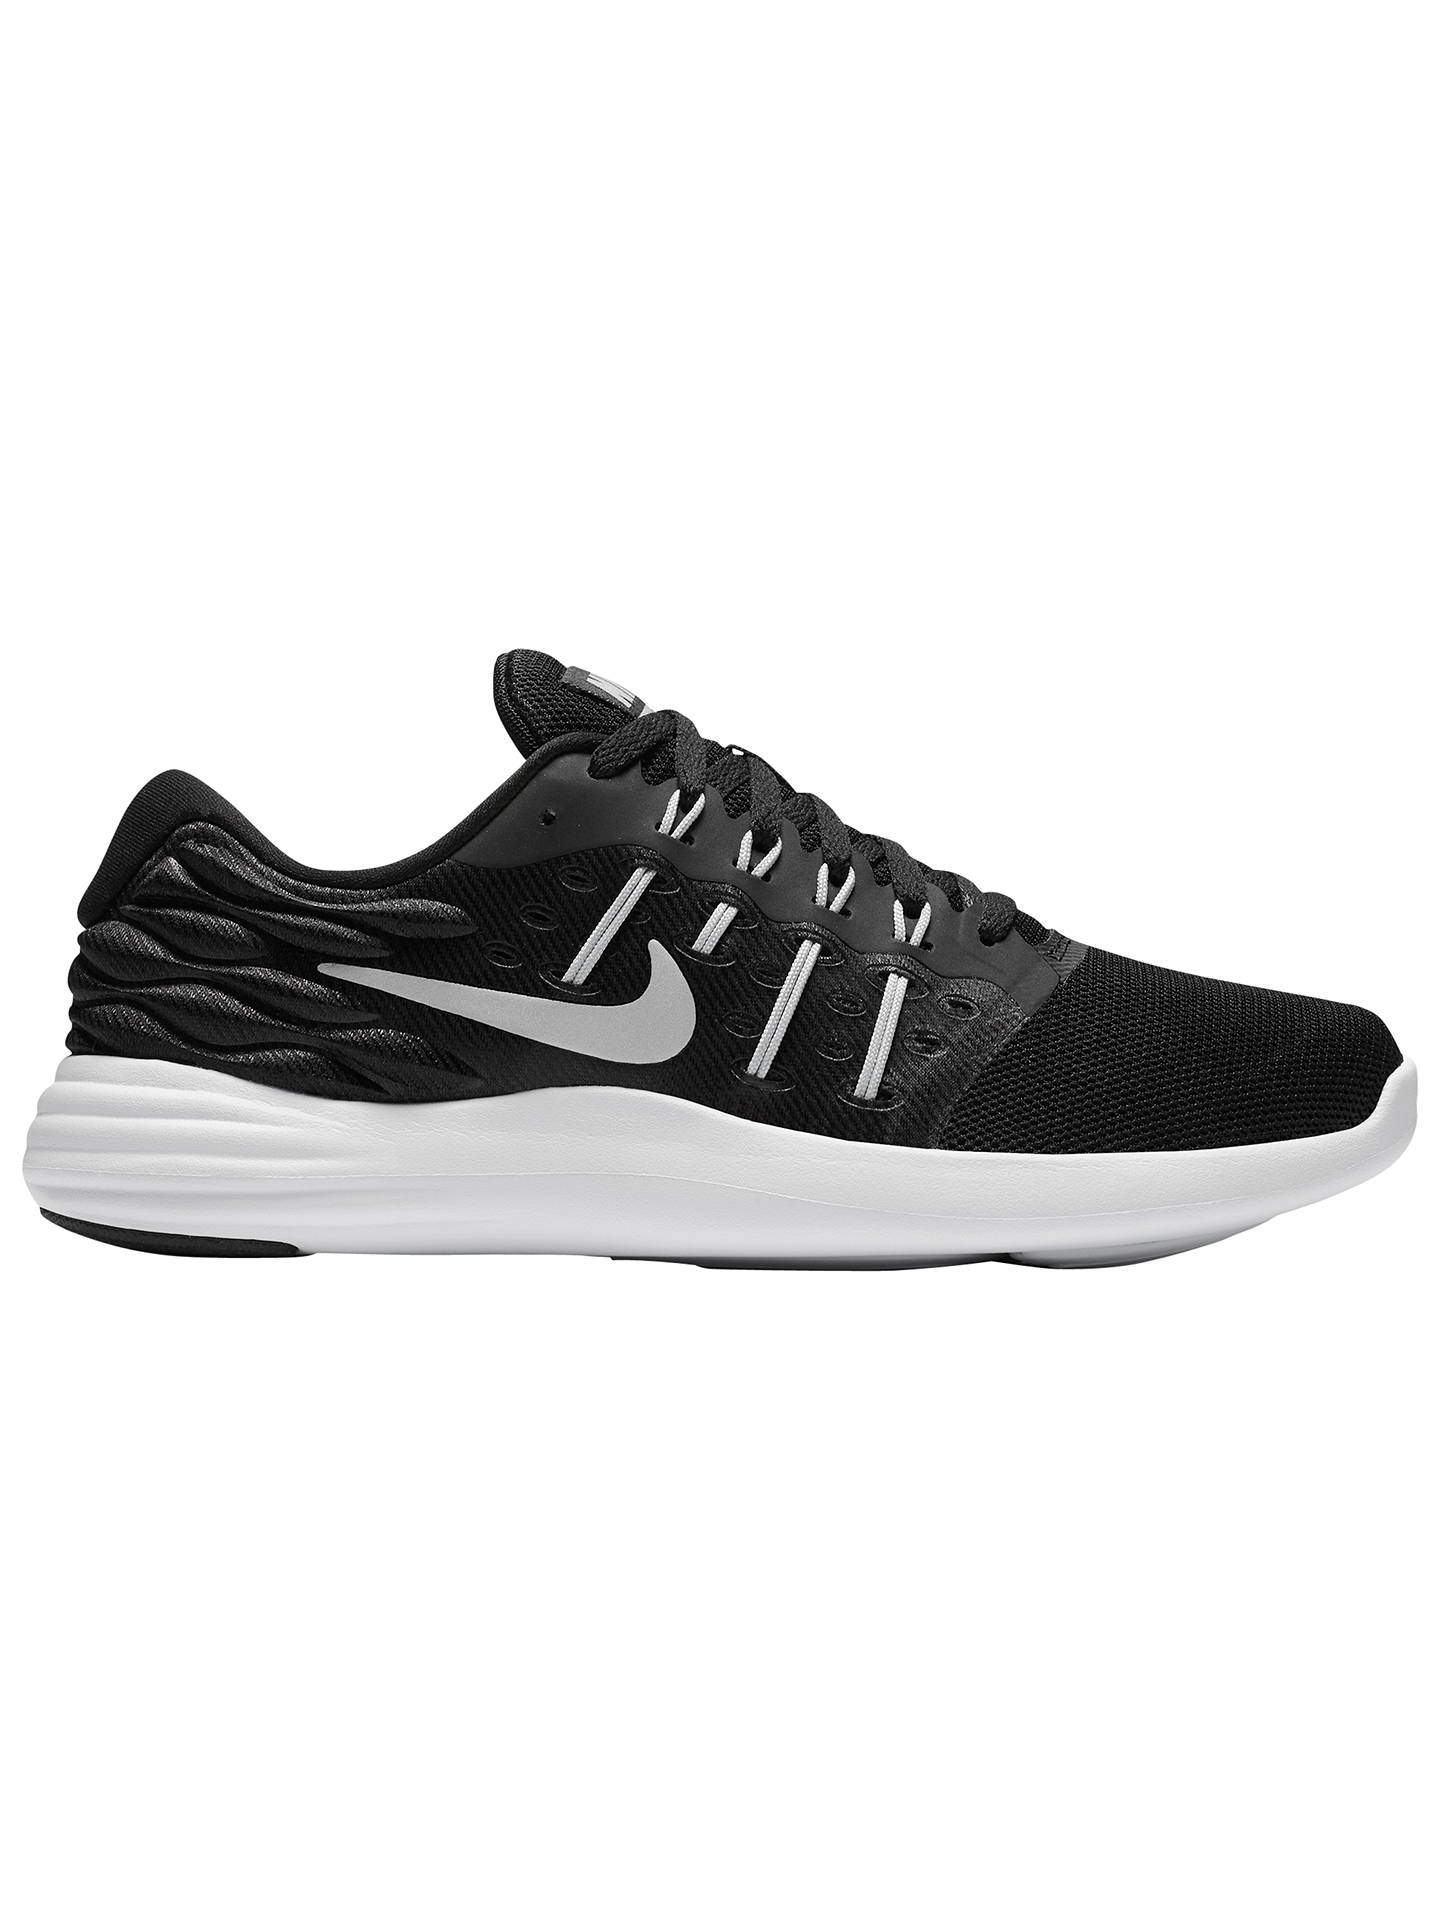 08d6c079965 Nike LunarStelos Women s Running Shoes at John Lewis   Partners